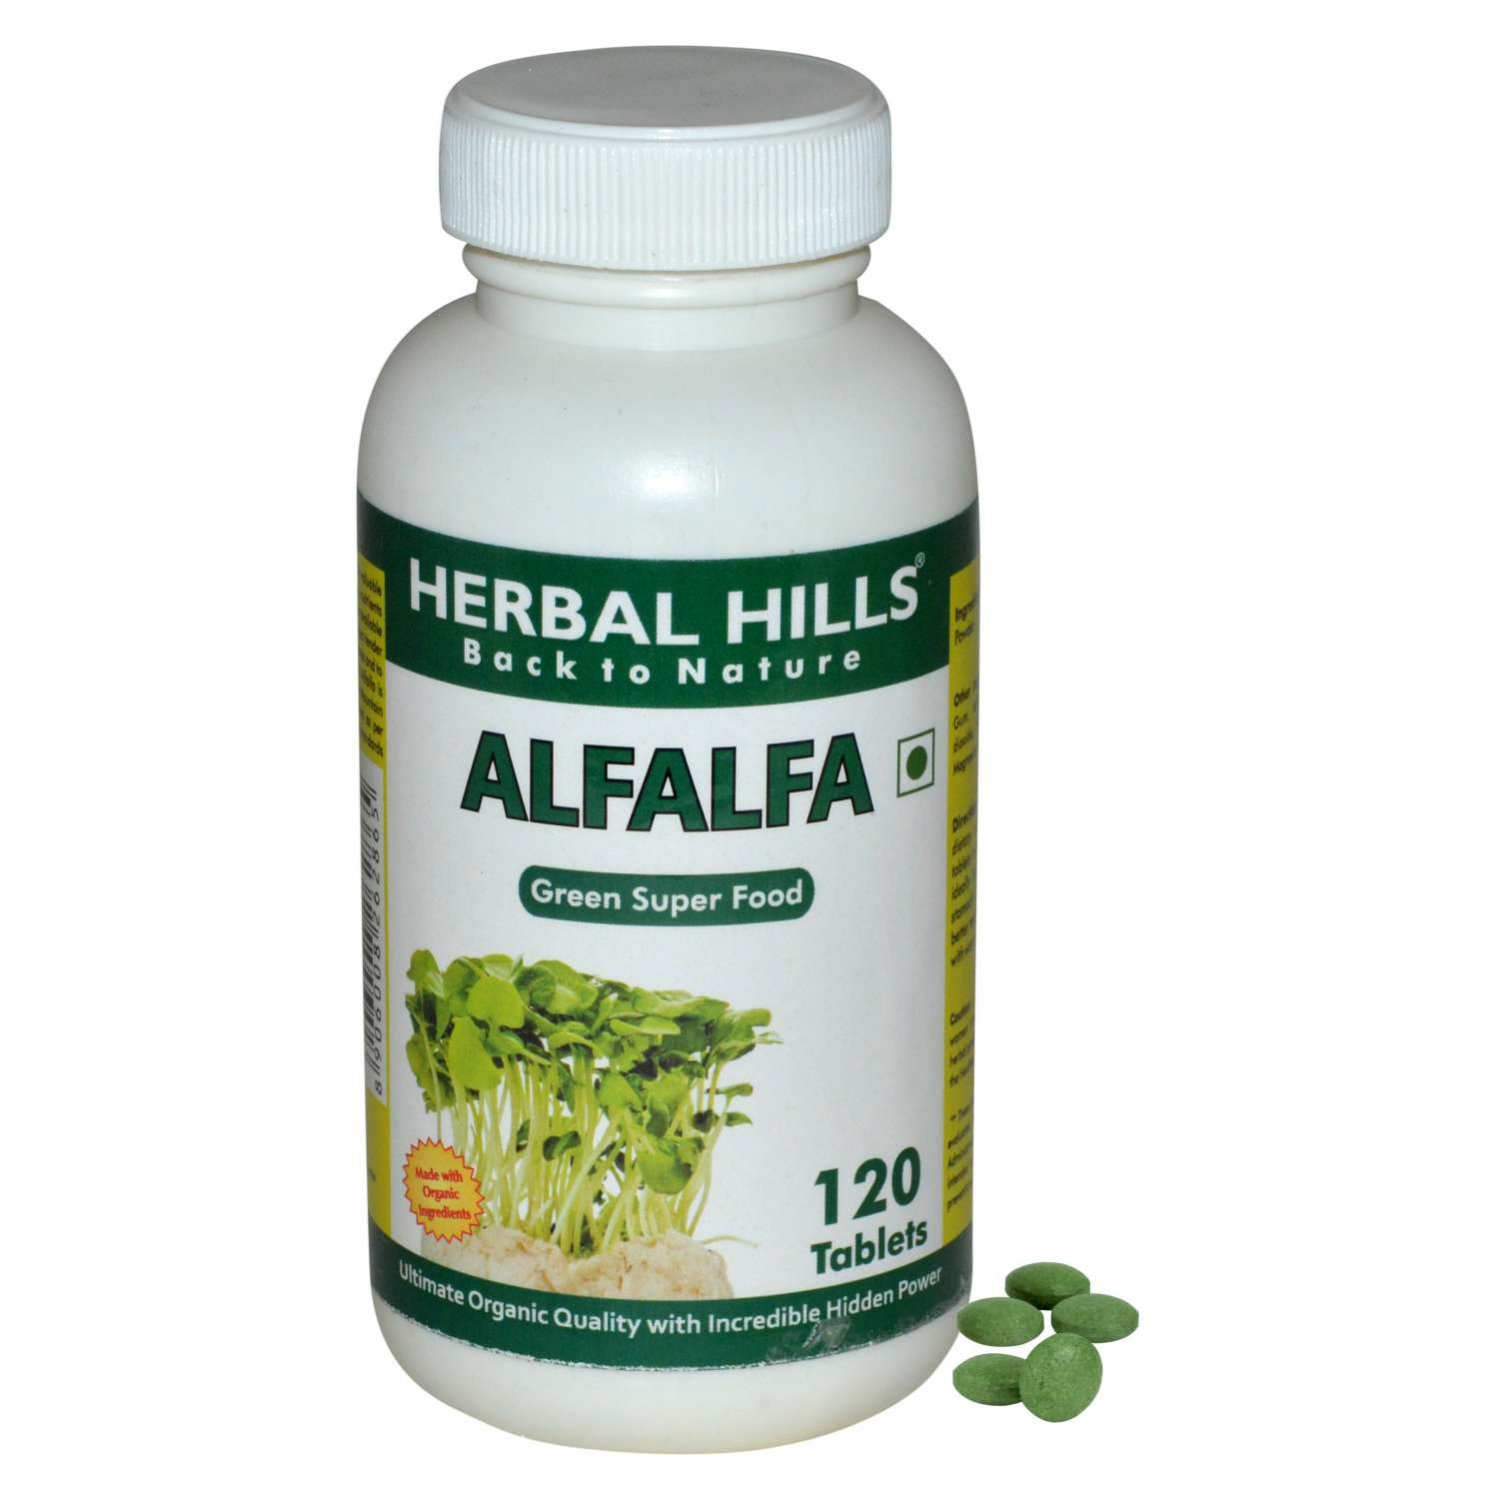 Organic Alfalfa medicago sativa 120 tablets